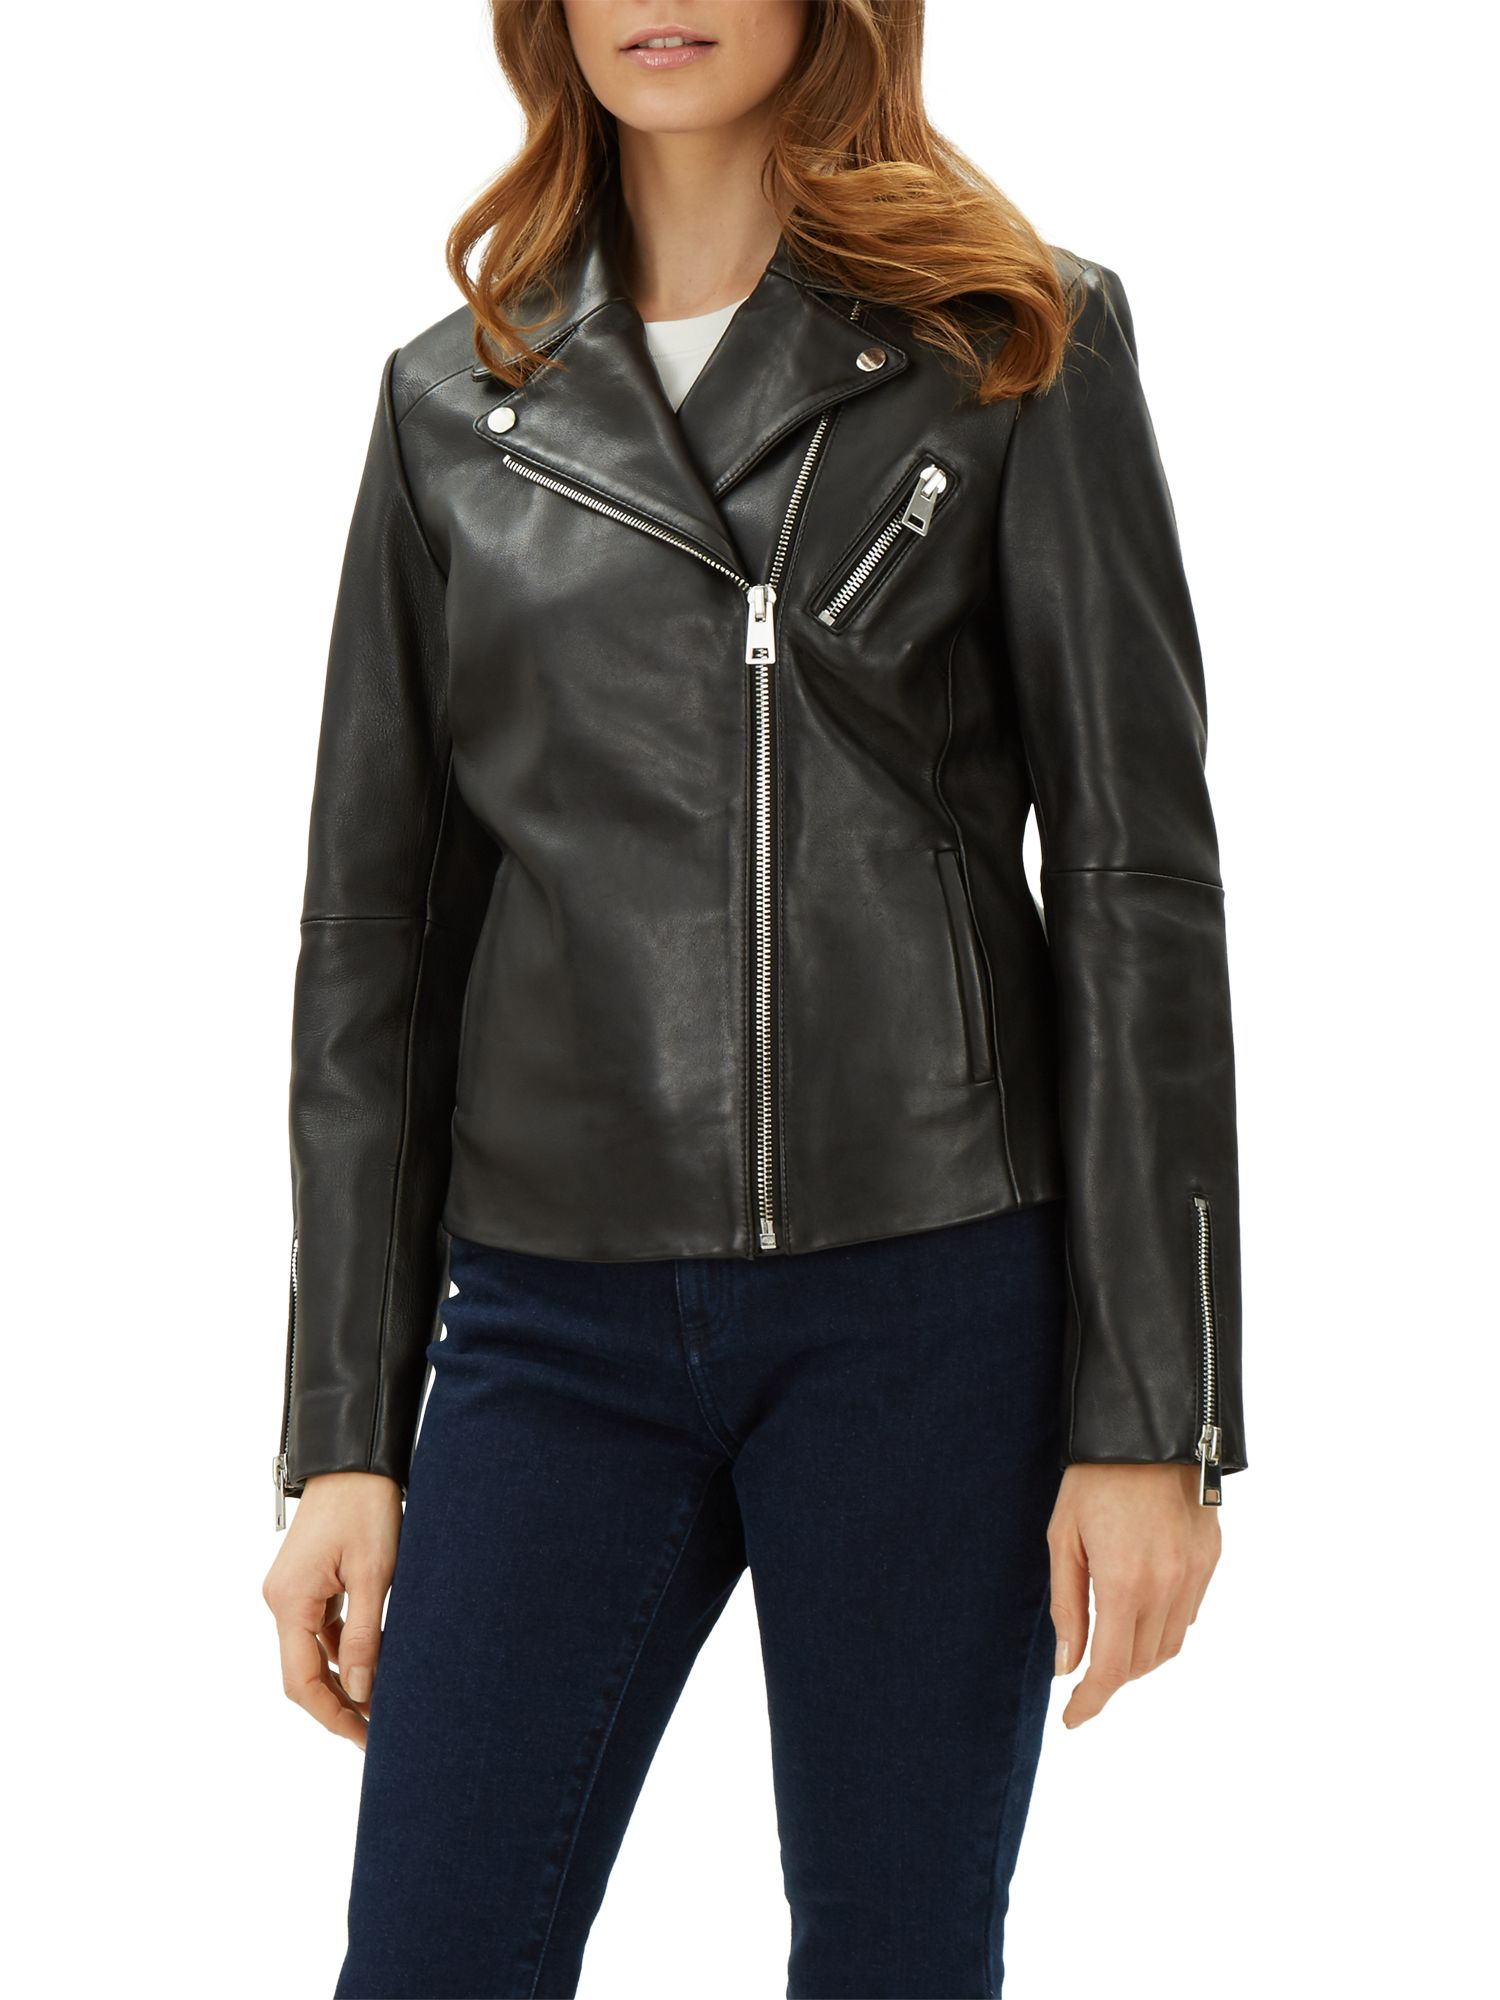 Jaeger Jaeger Leather Biker Jacket, Black